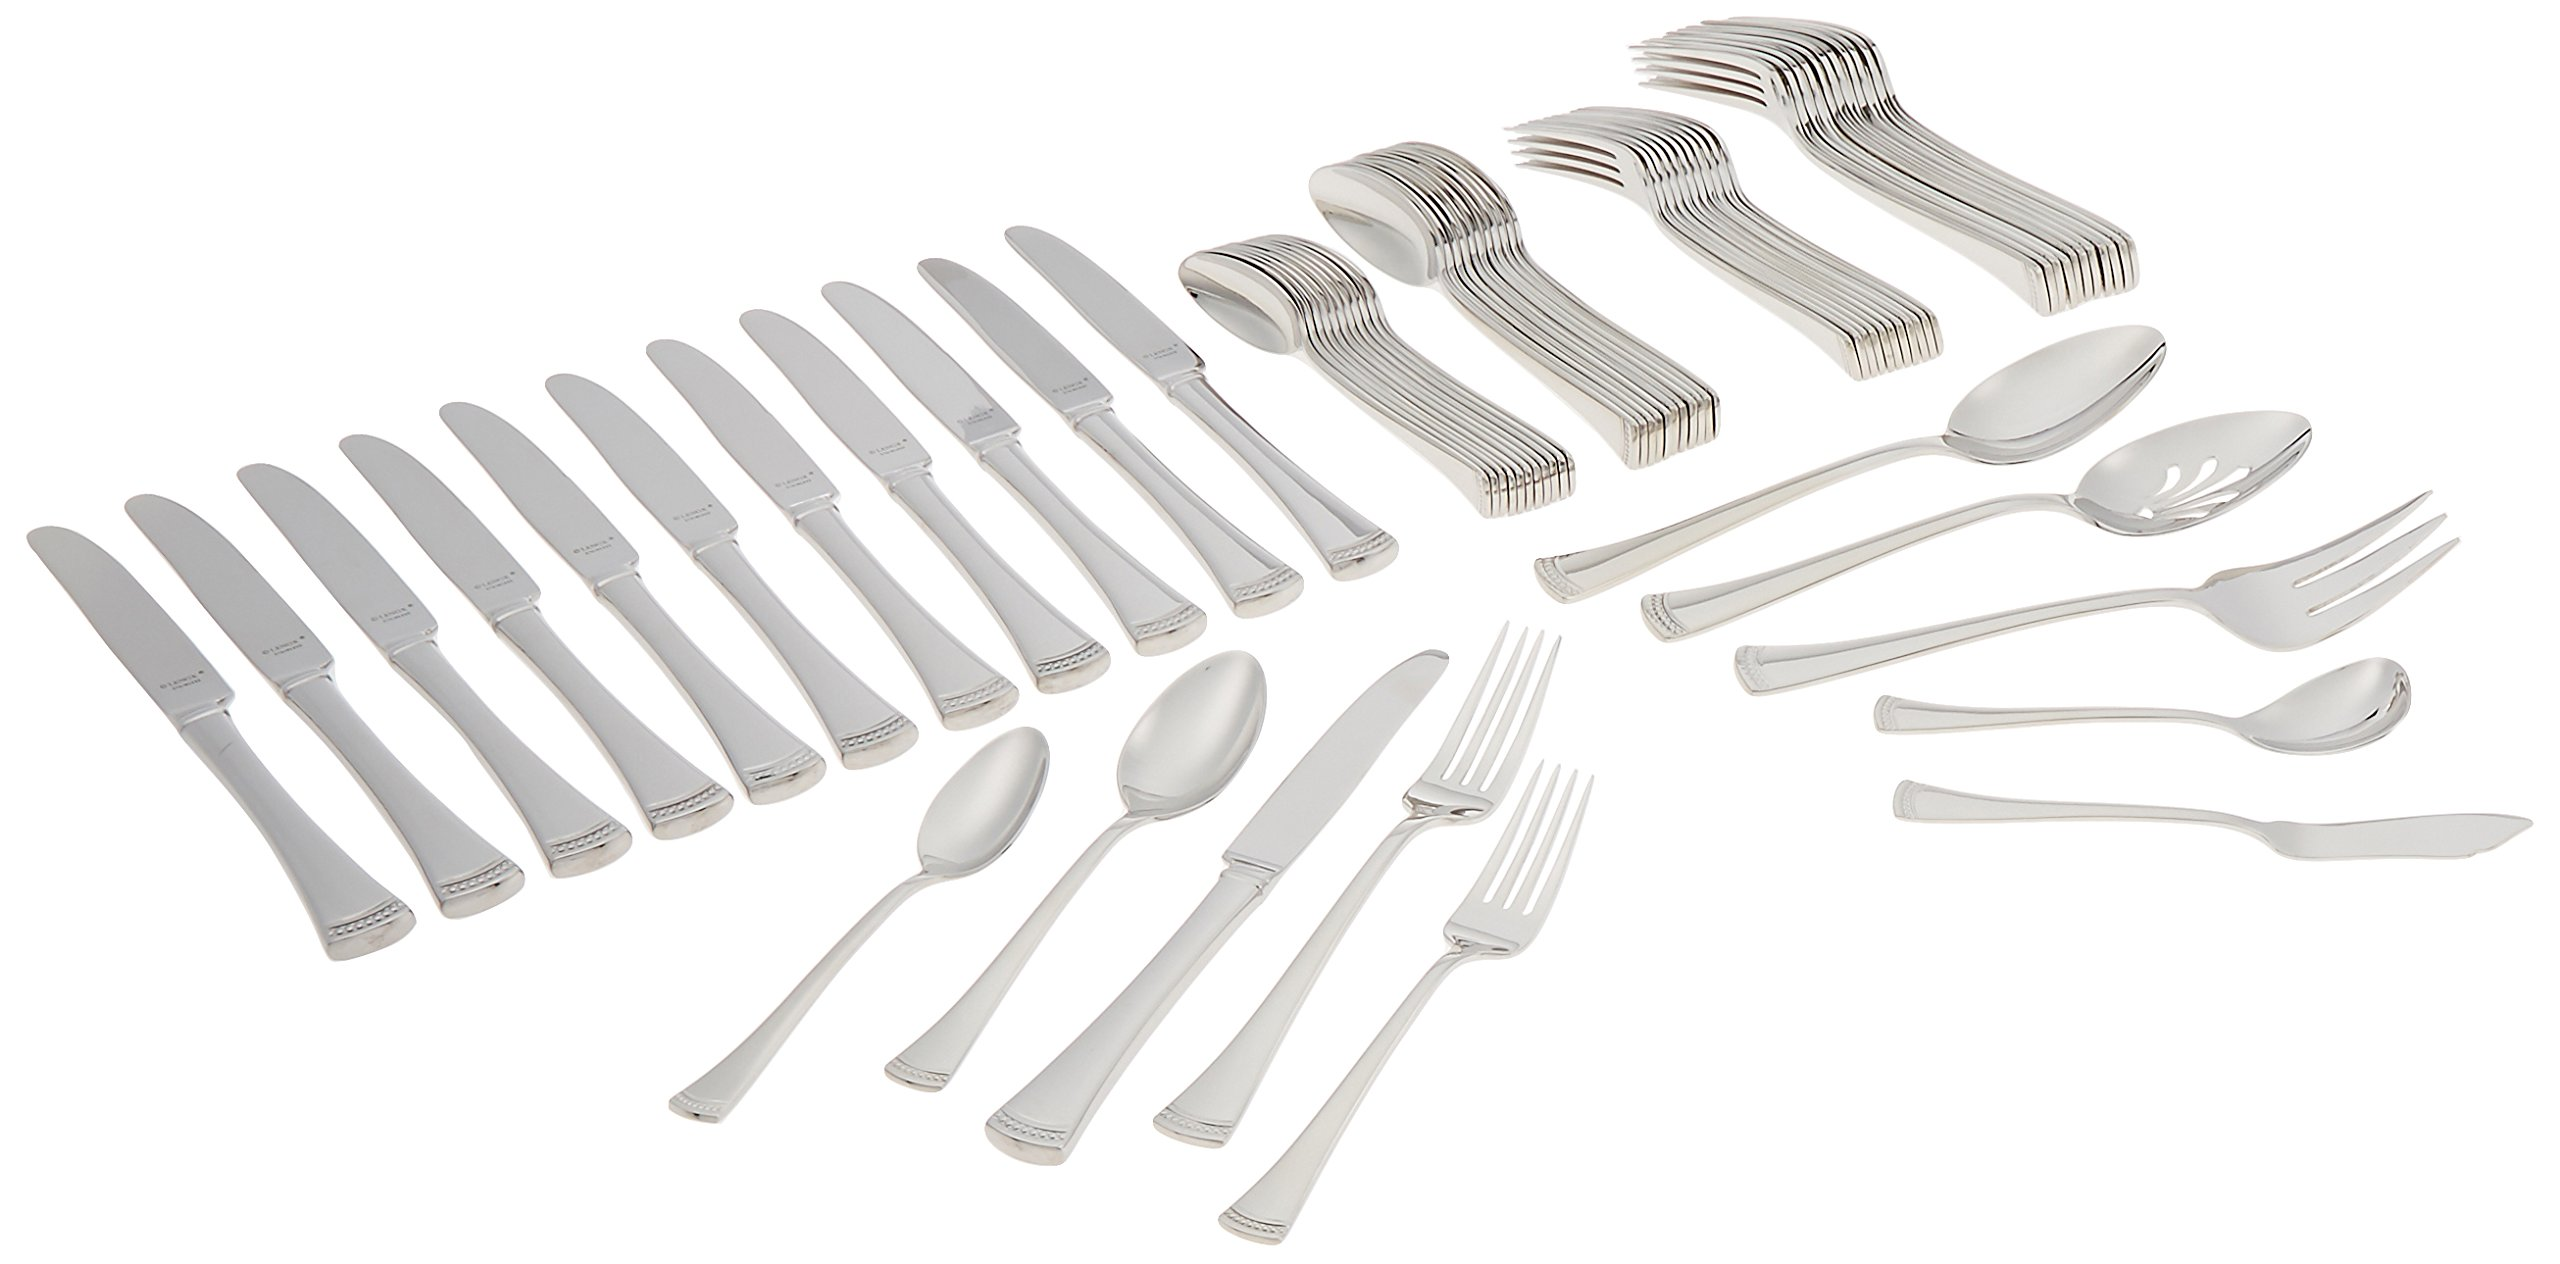 Portola 65-piece Stainless Flatware Set by Lenox